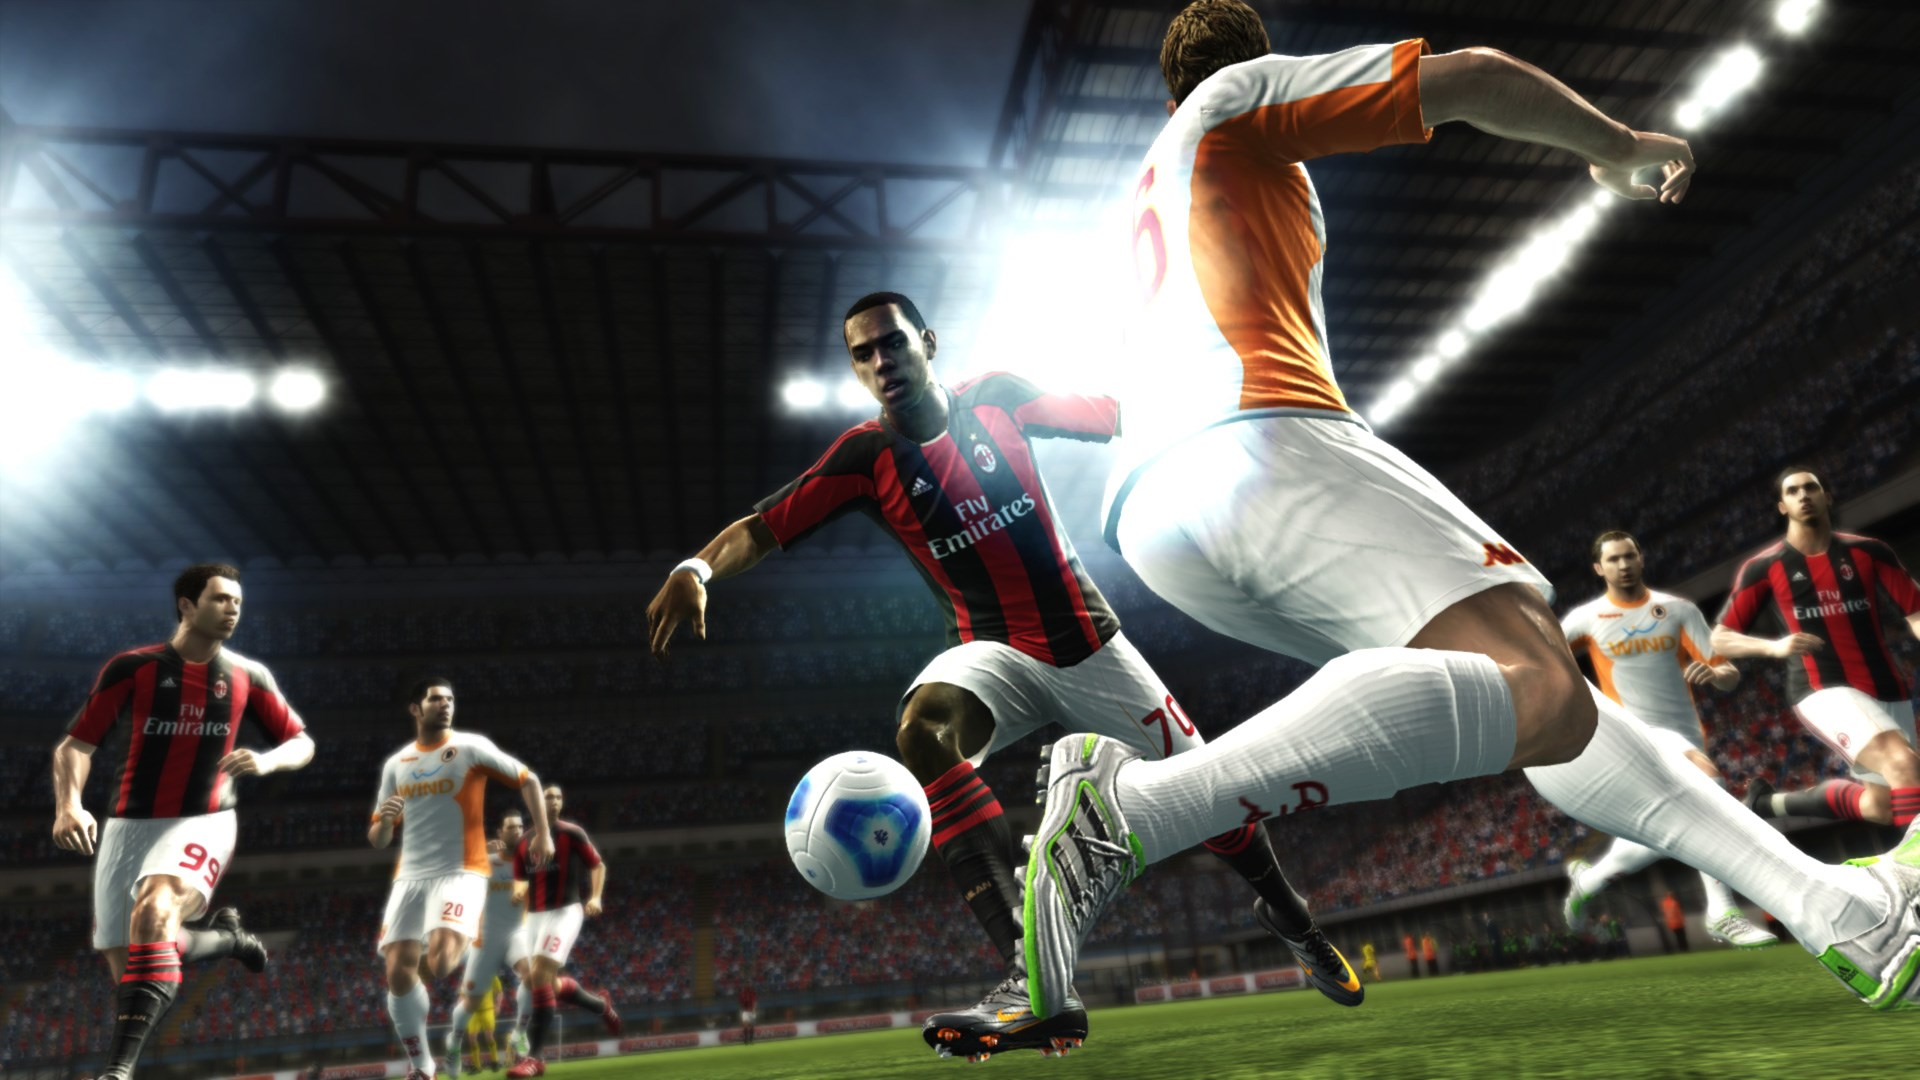 1920x1080-free-desktop-downloads-pro-evolution-soccer-wallpaper-wpc900701